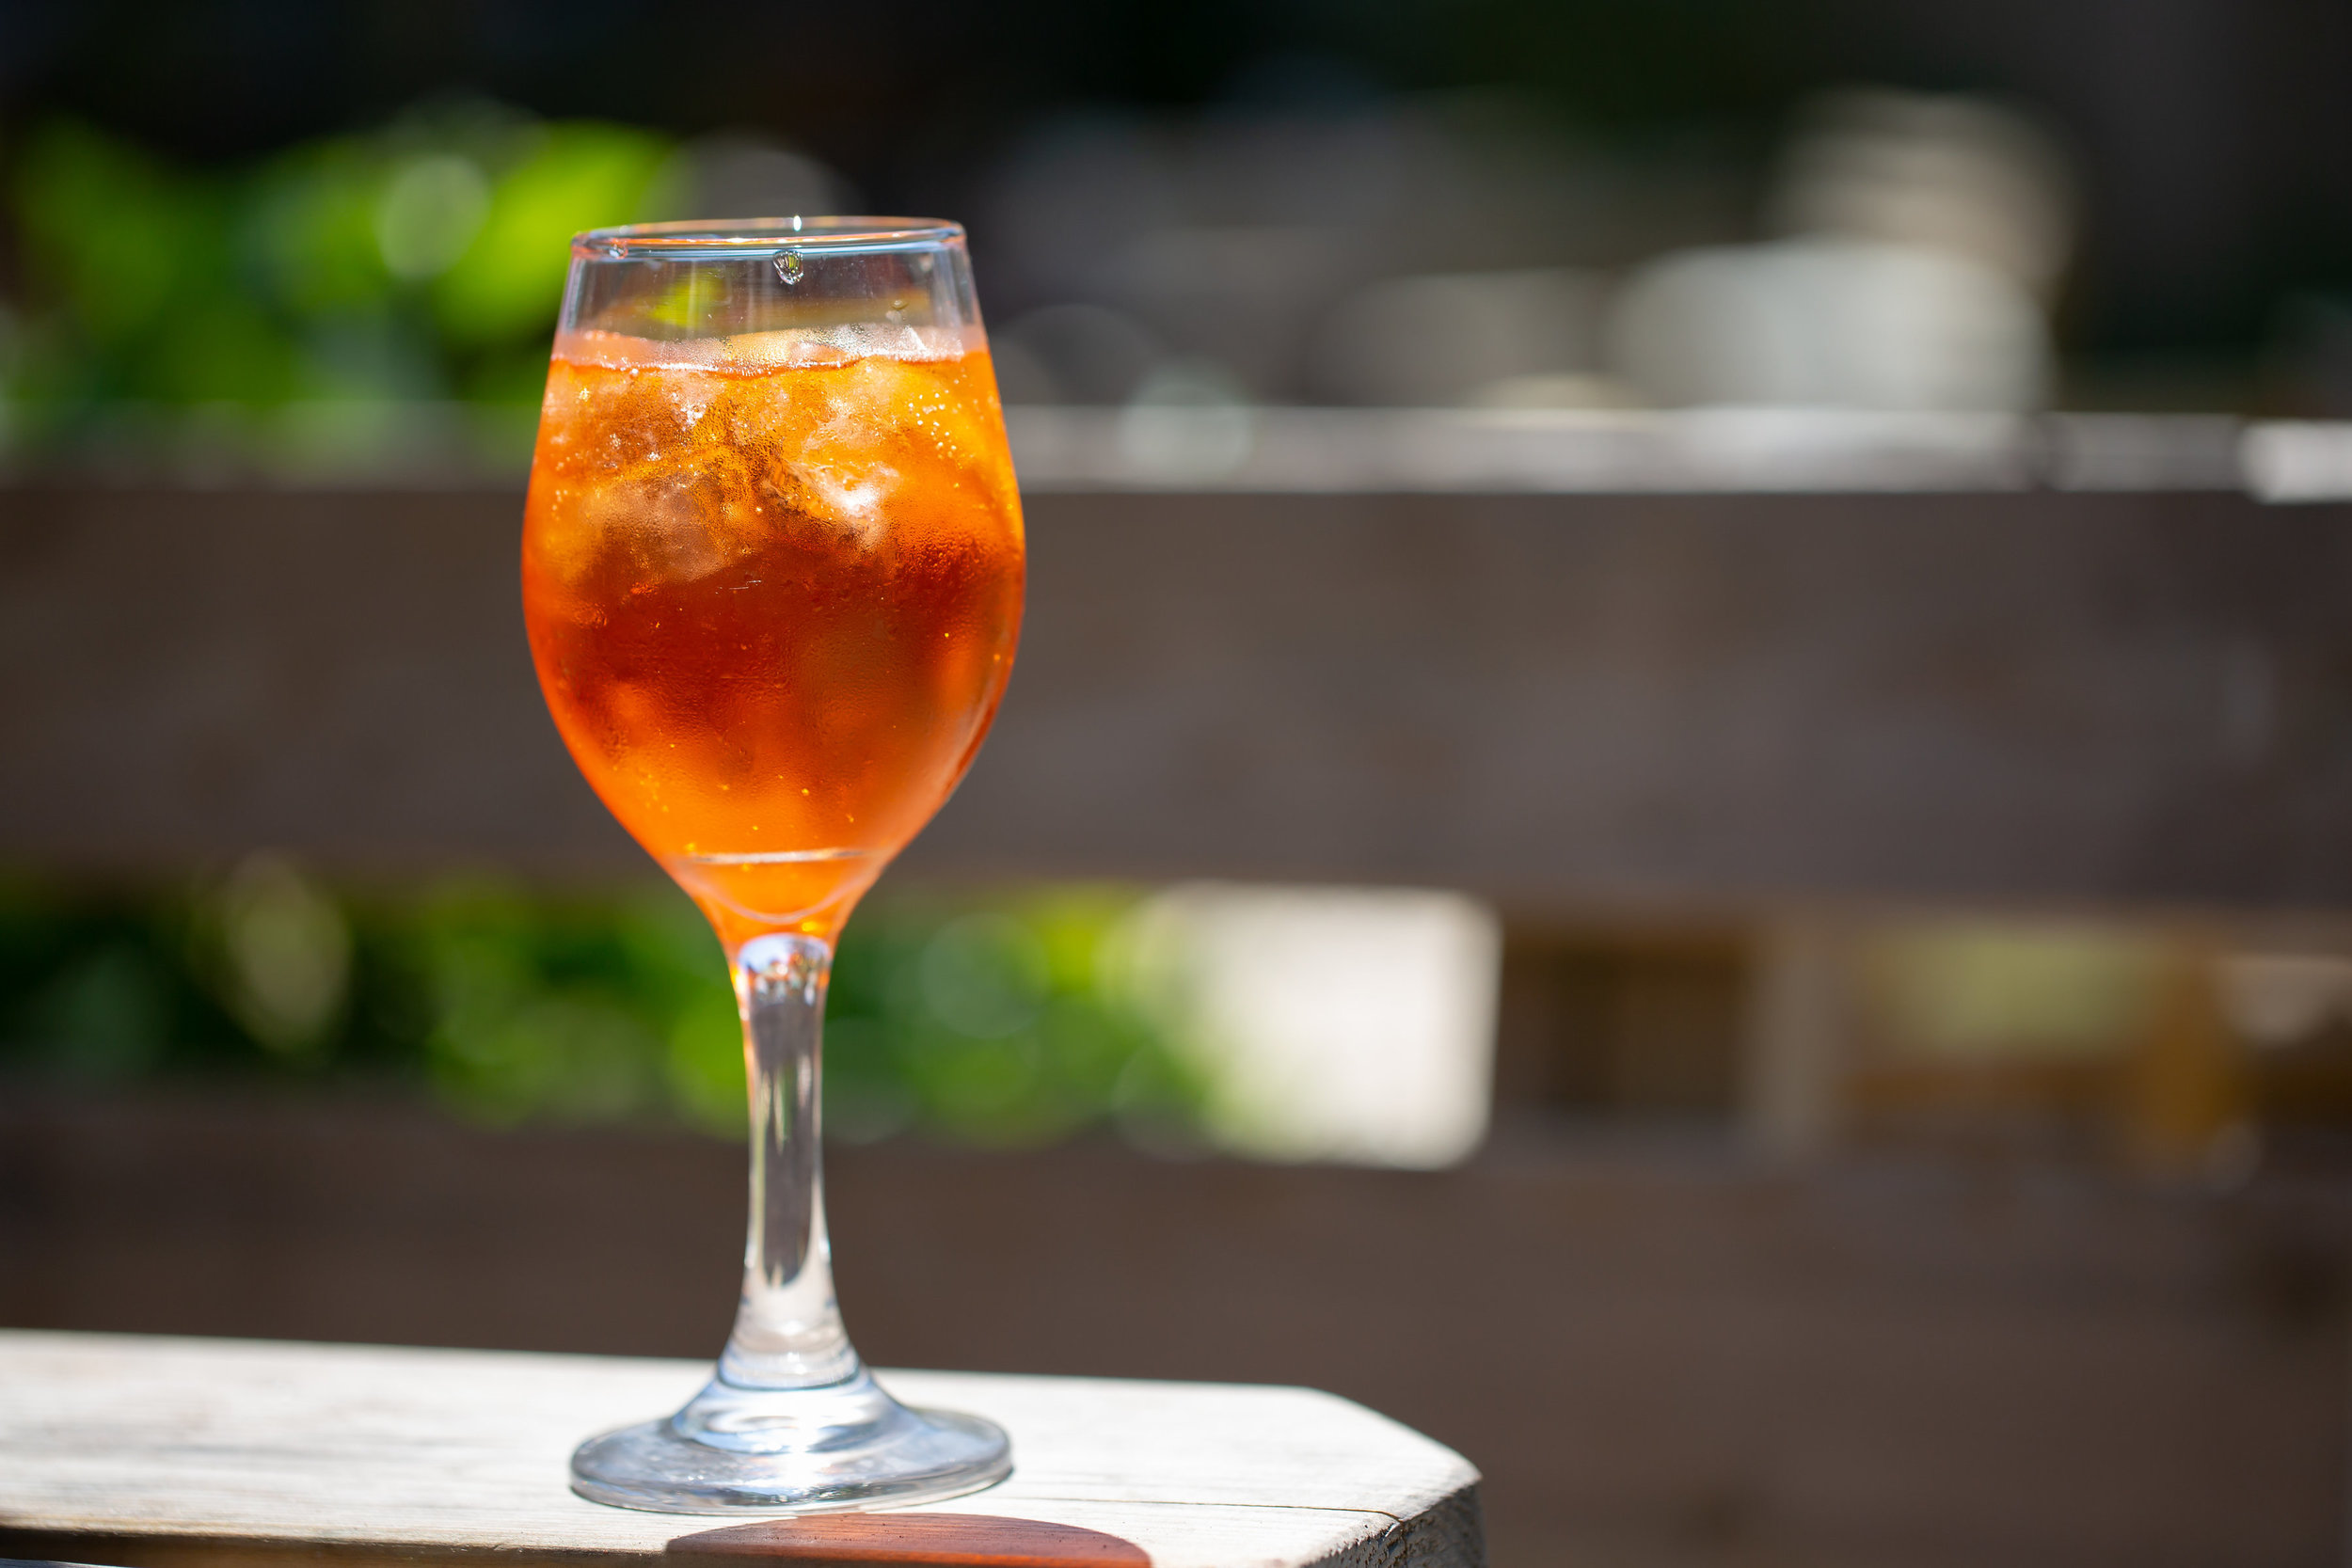 - There aren't many better things in life than sitting in the garden of The Lamb Inn, sipping on an Aperol and basking in the Sussex sun- Oli, Happy Customer